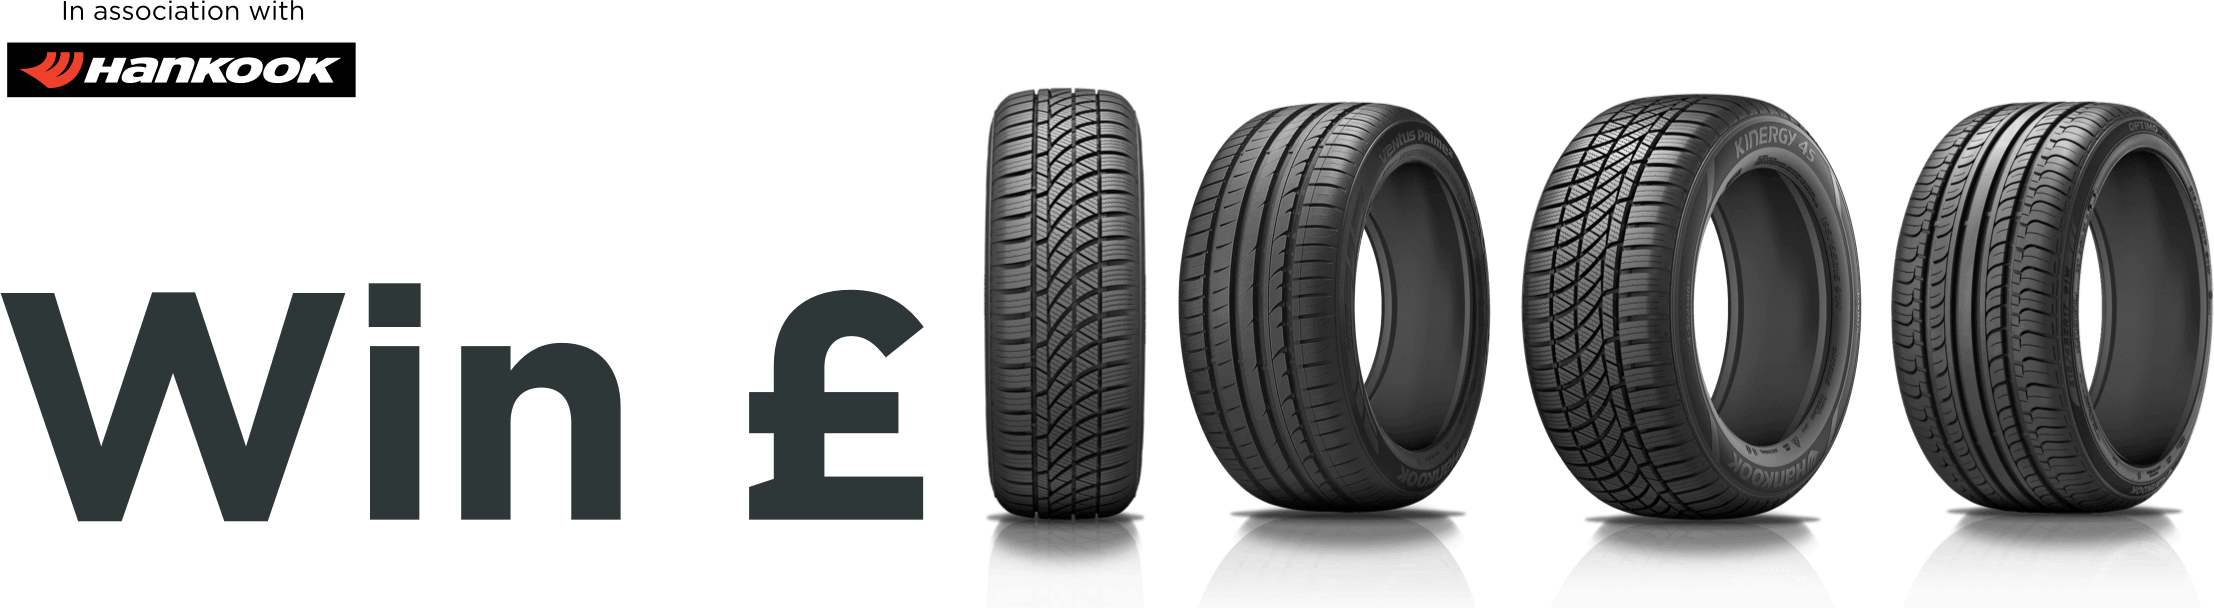 Buy a Hankook tyre, win a thousand pounds